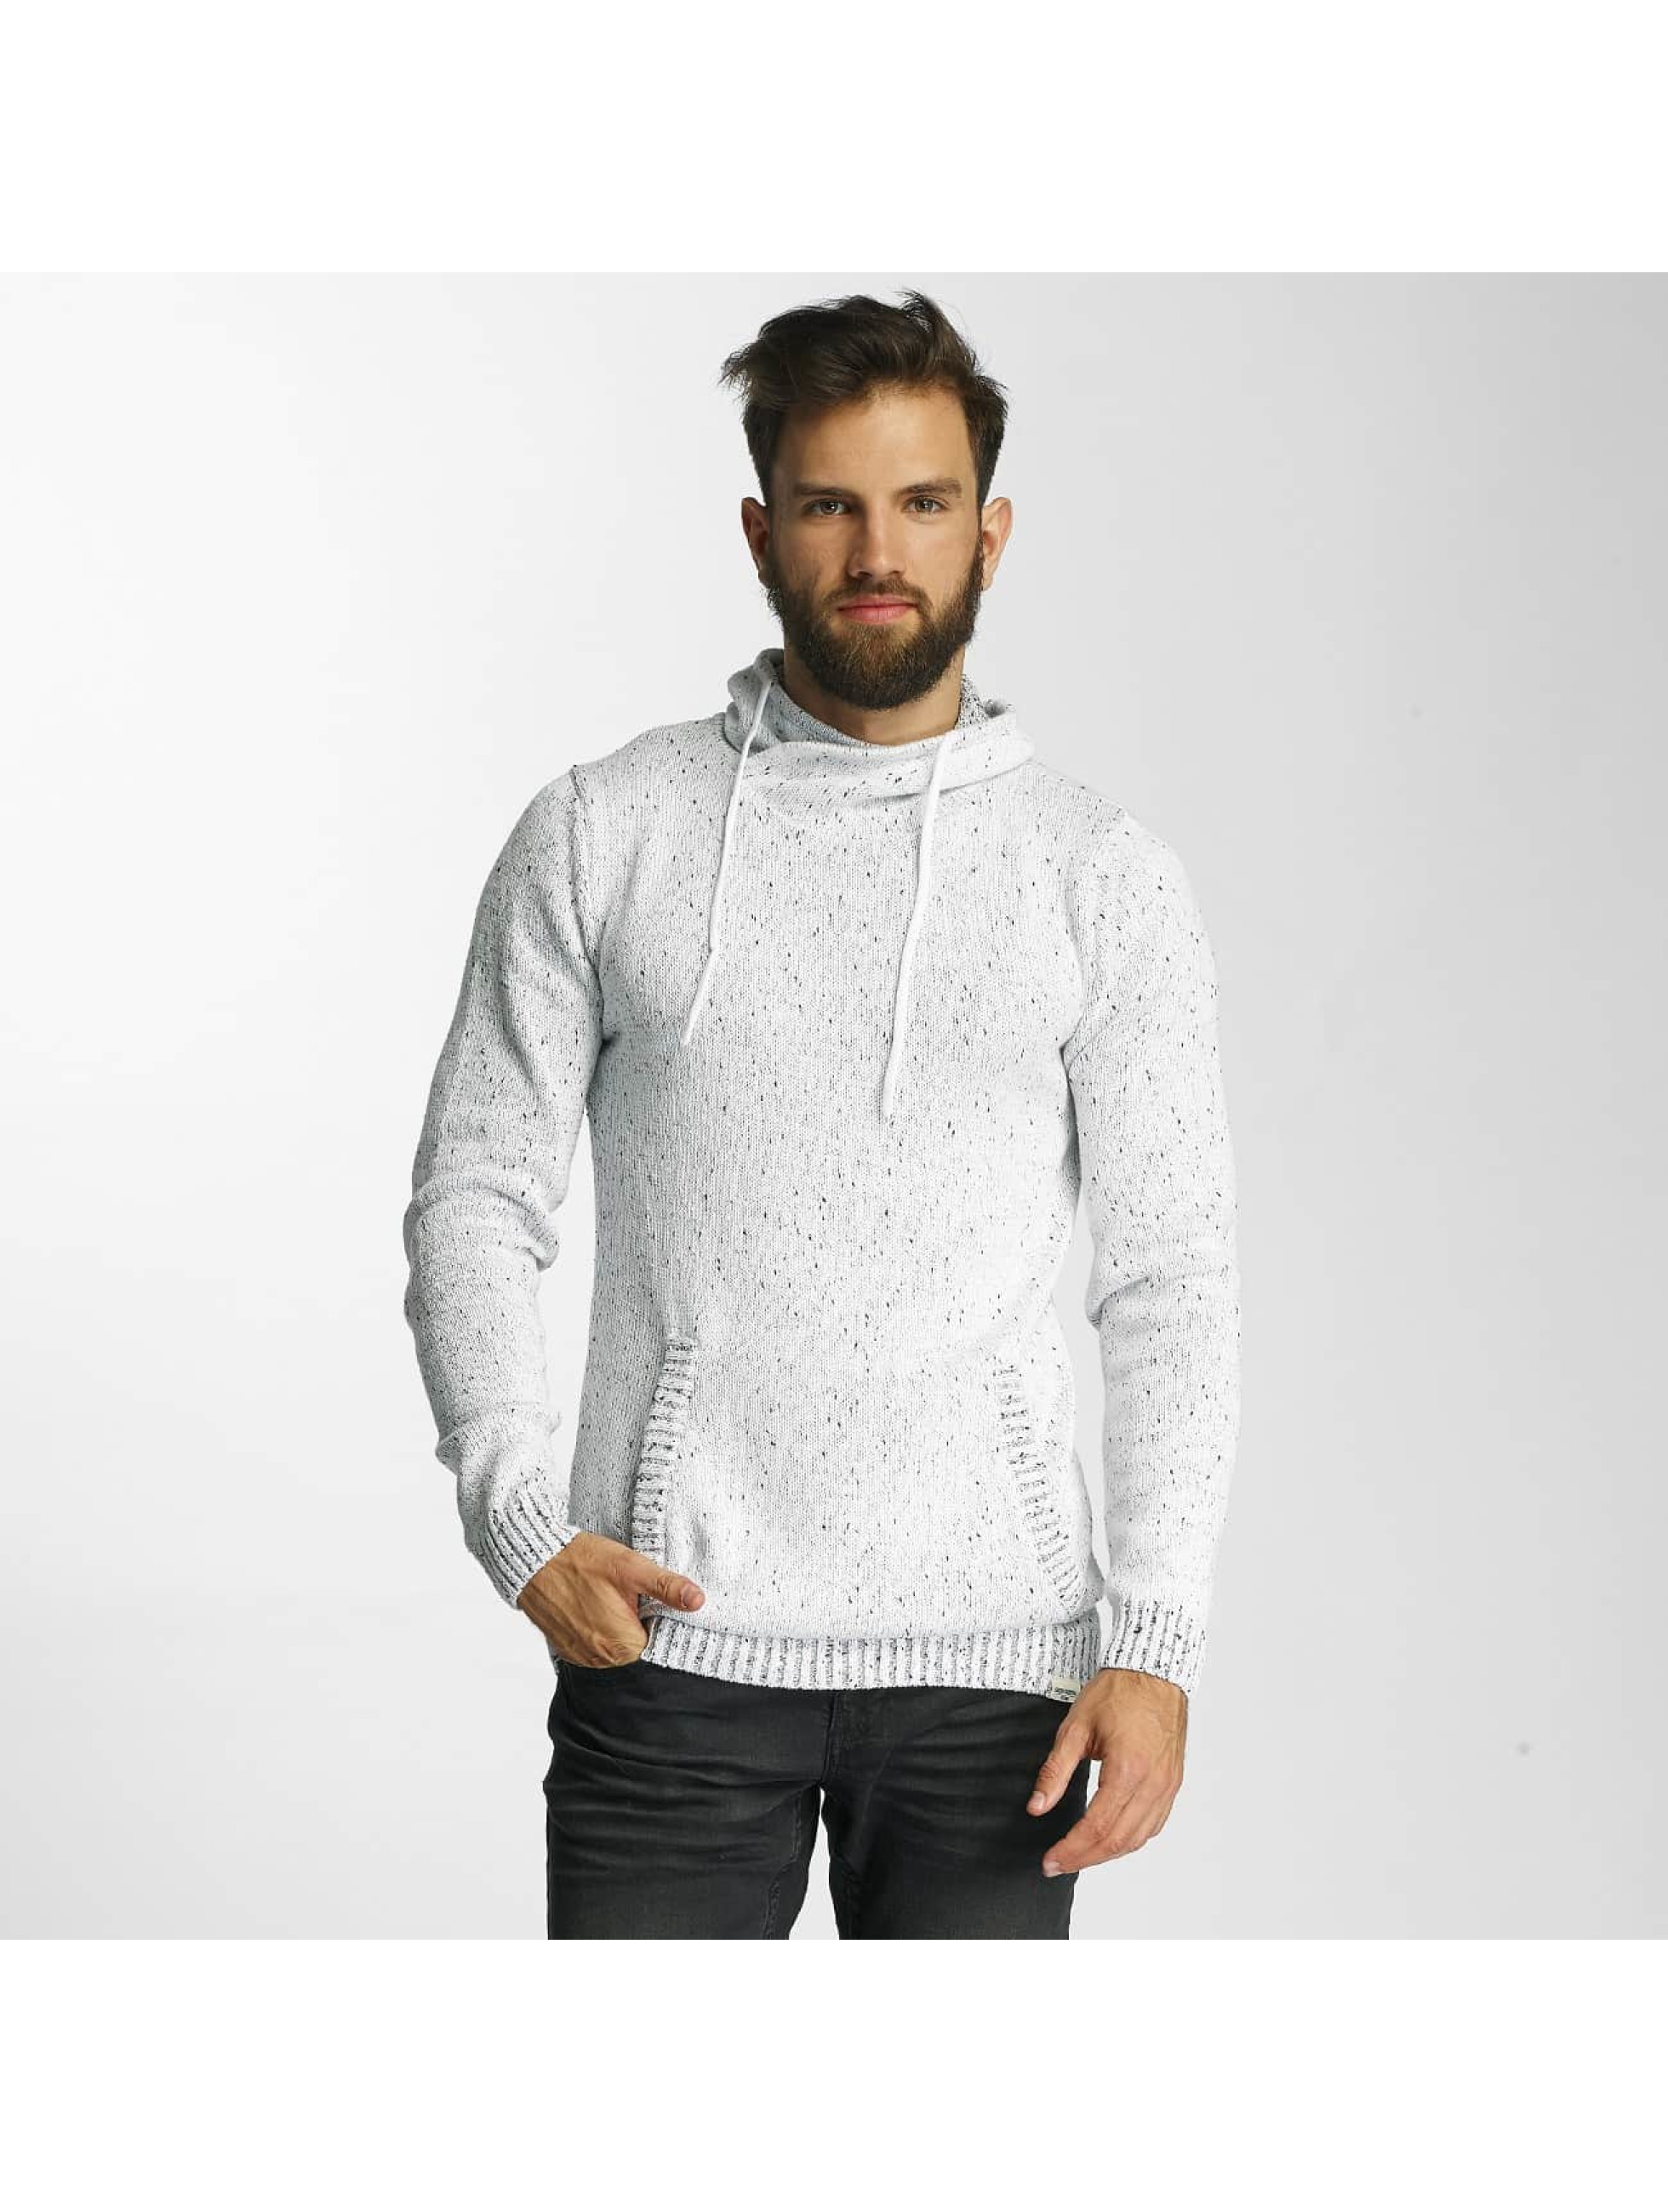 SHINE Original Männer Pullover Wade Cross in weiß